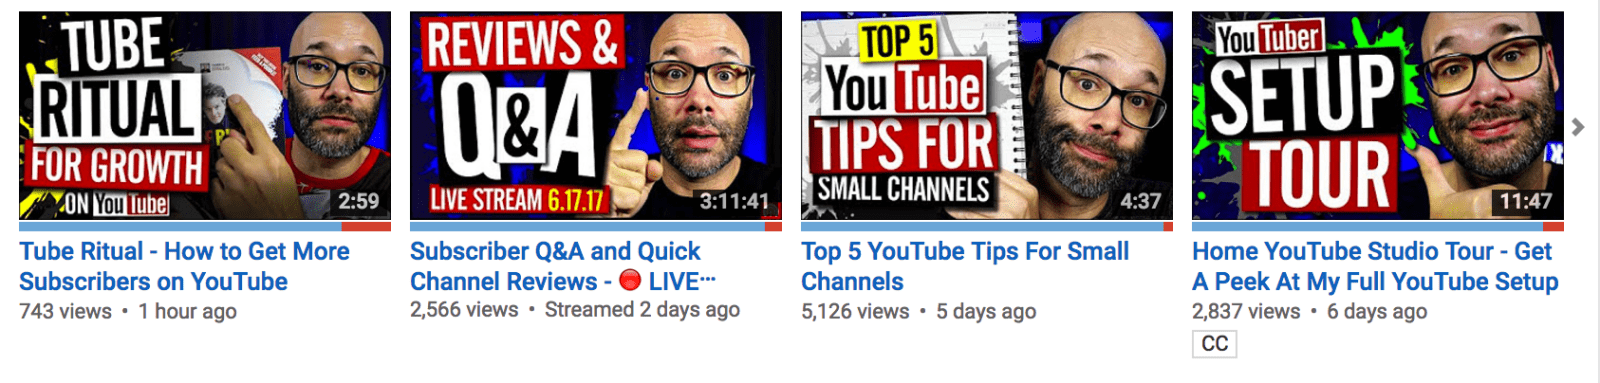 Branding for your video content can include custom designed thumbnail images